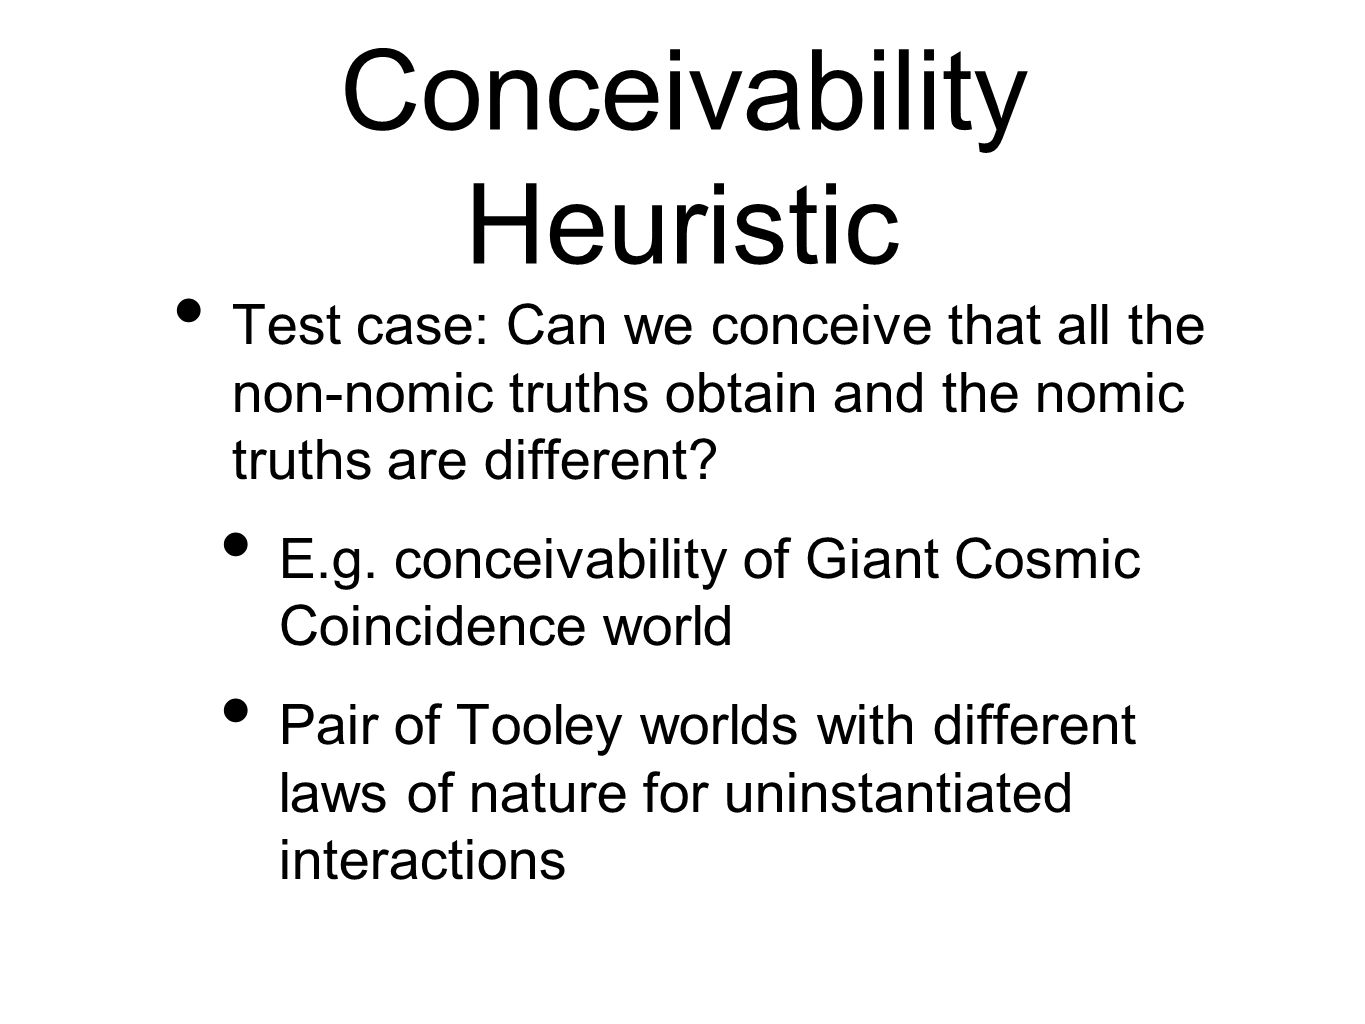 Conceivability Heuristic